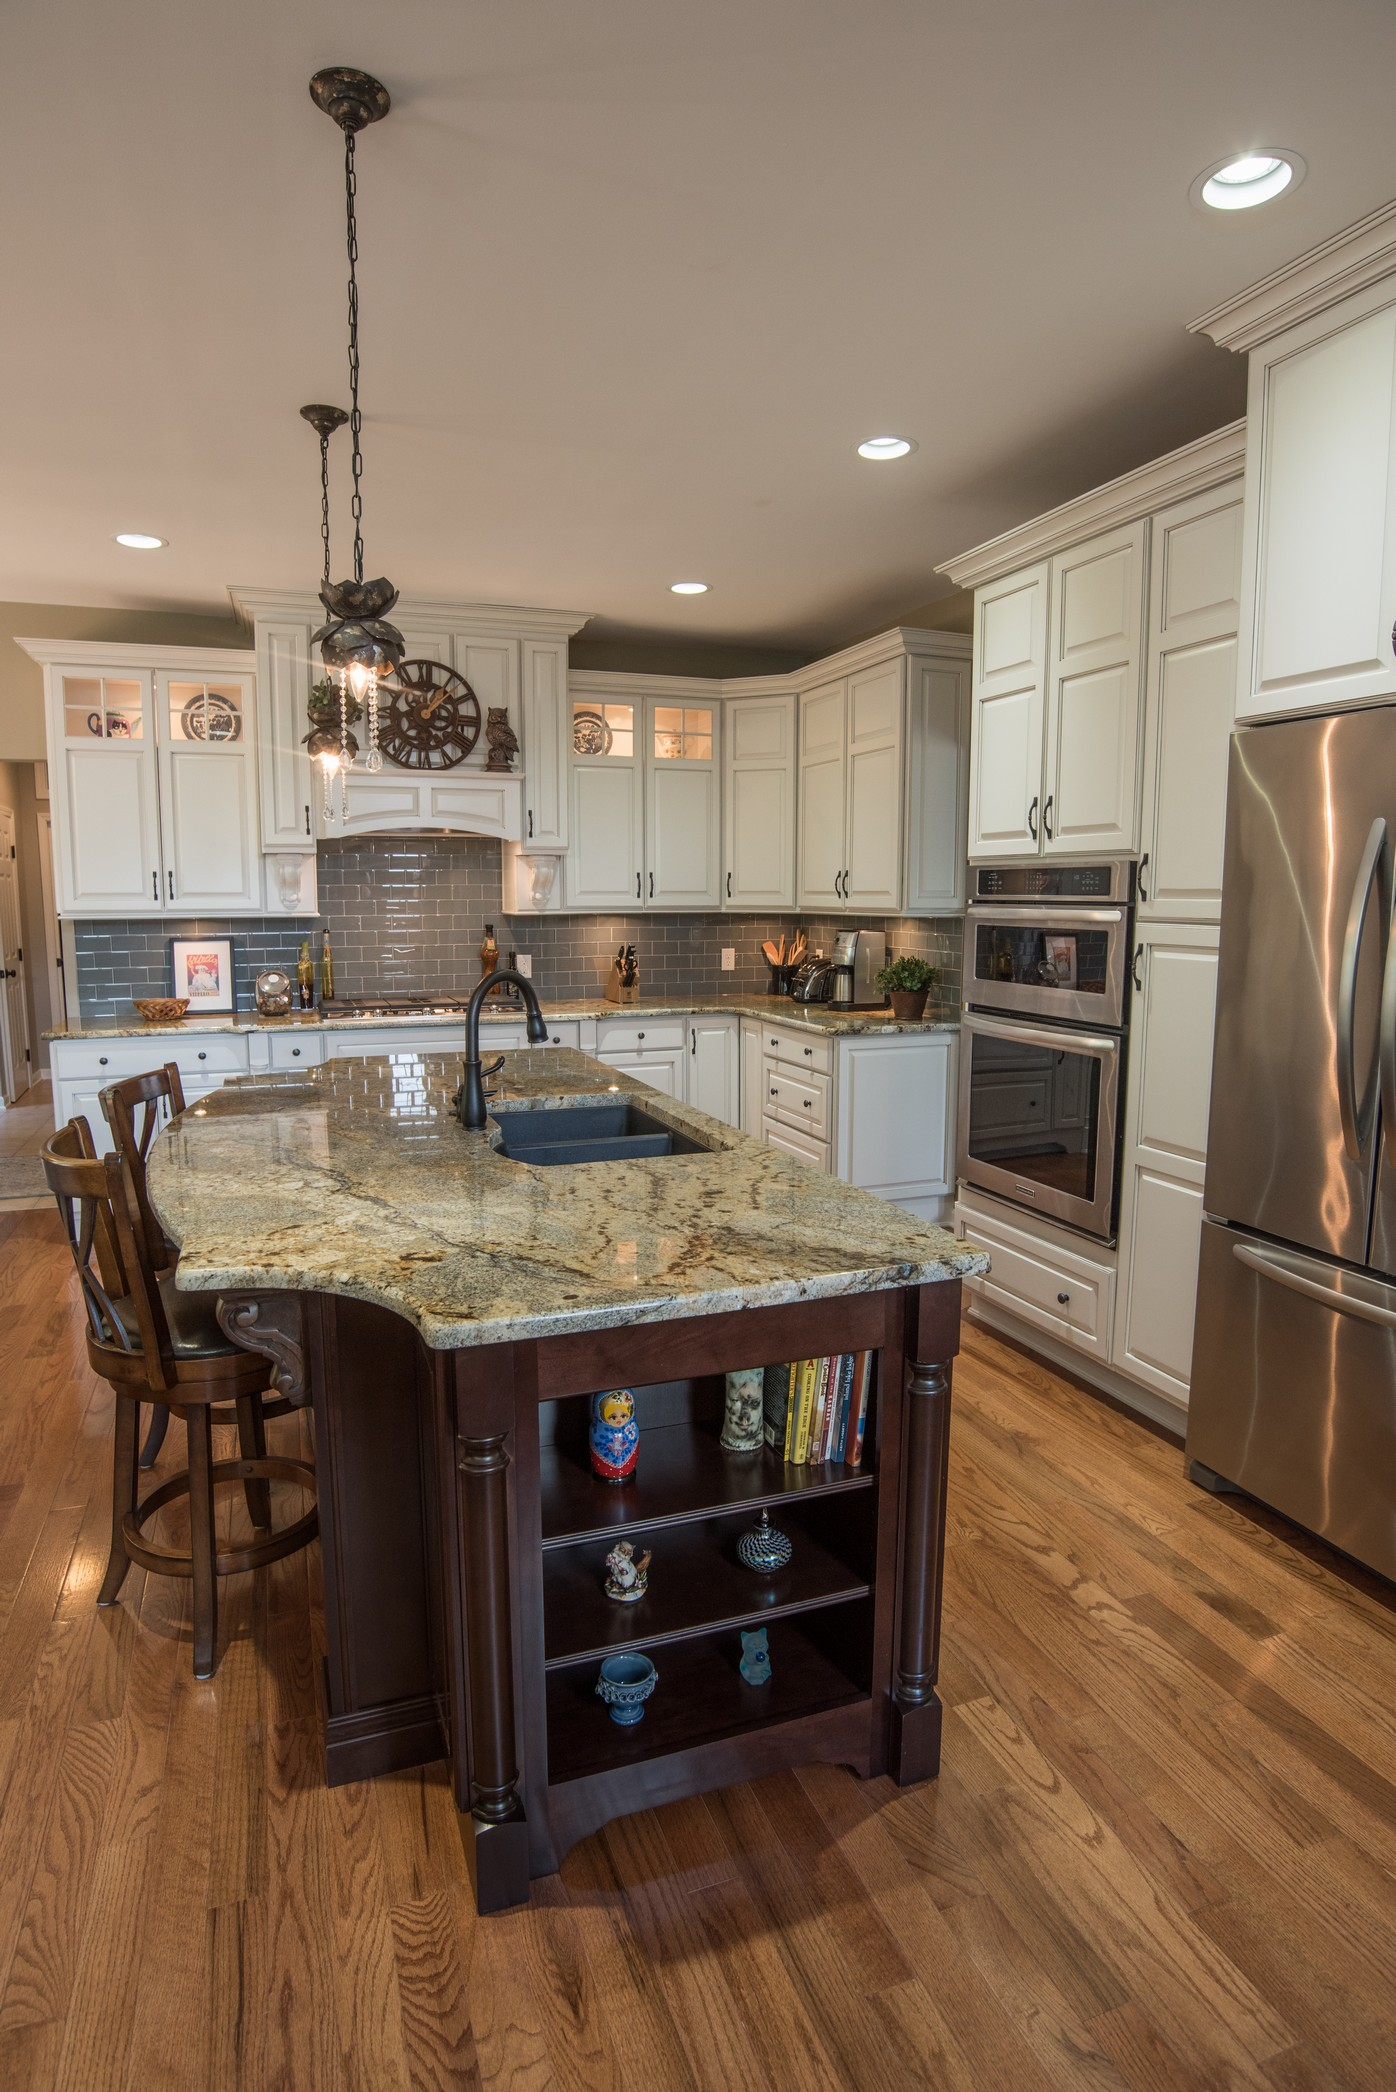 Kitchen Design Jobs Buffalo Ny Home Remodeling Buffalo Ny Kitchen Remodel Bathroom